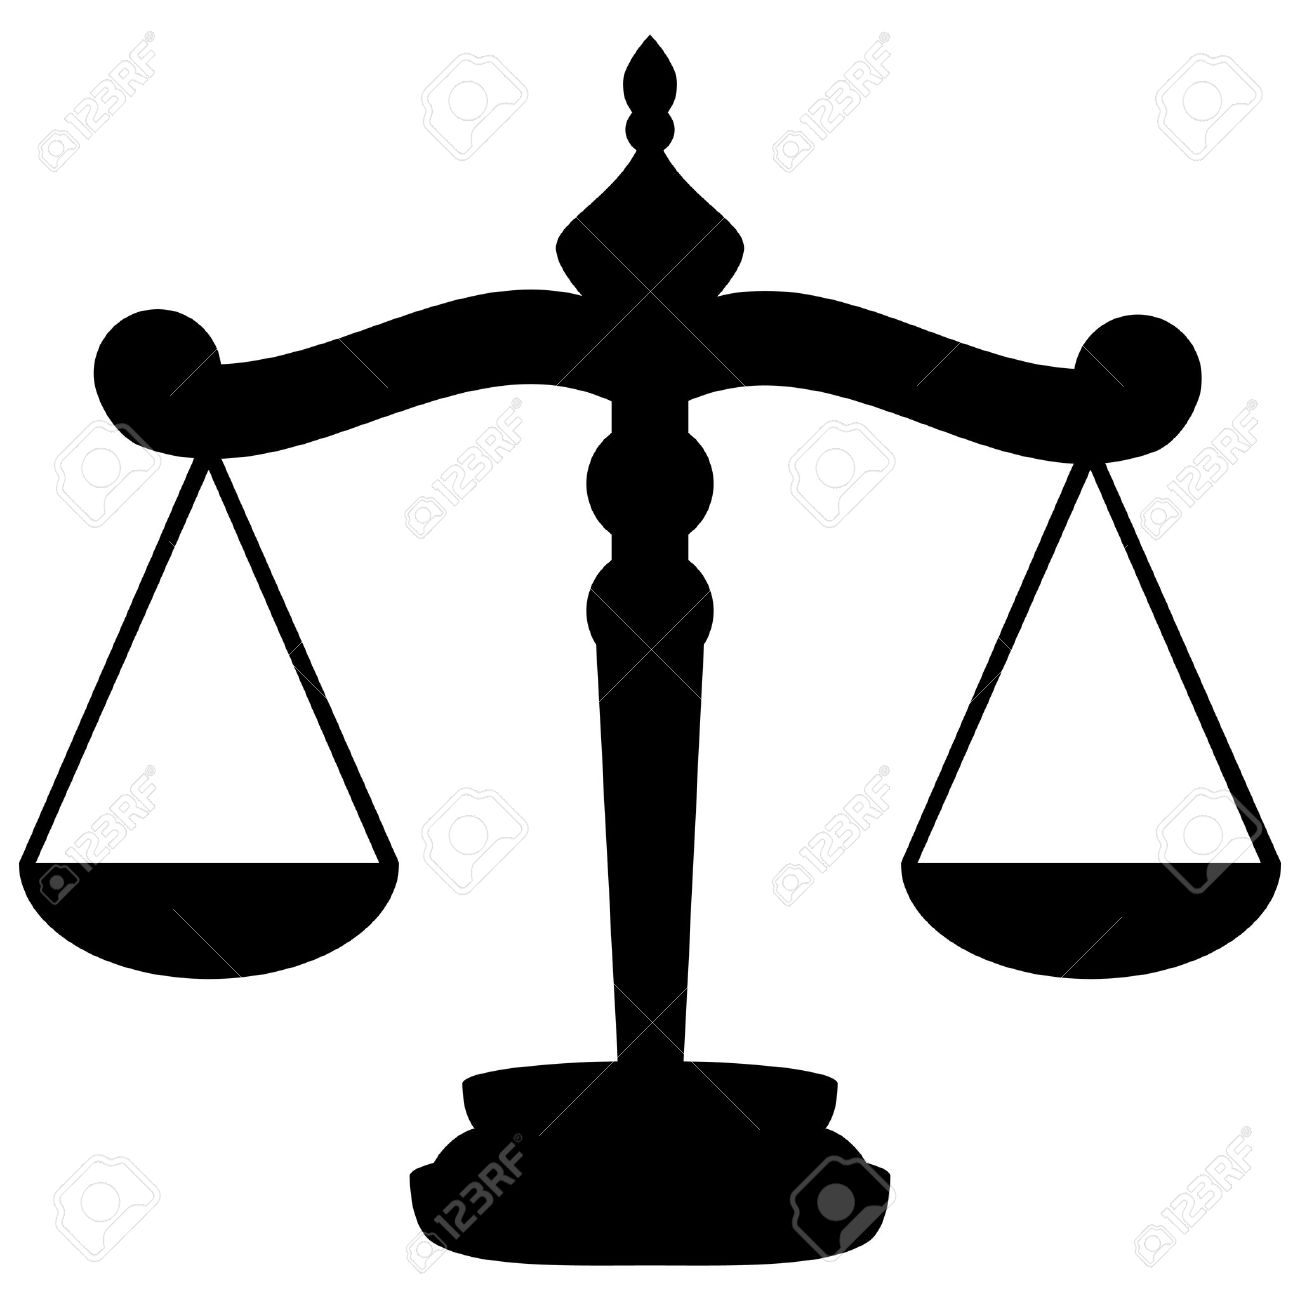 Scales Of Justice Royalty Free Cliparts, Vectors, And Stock.